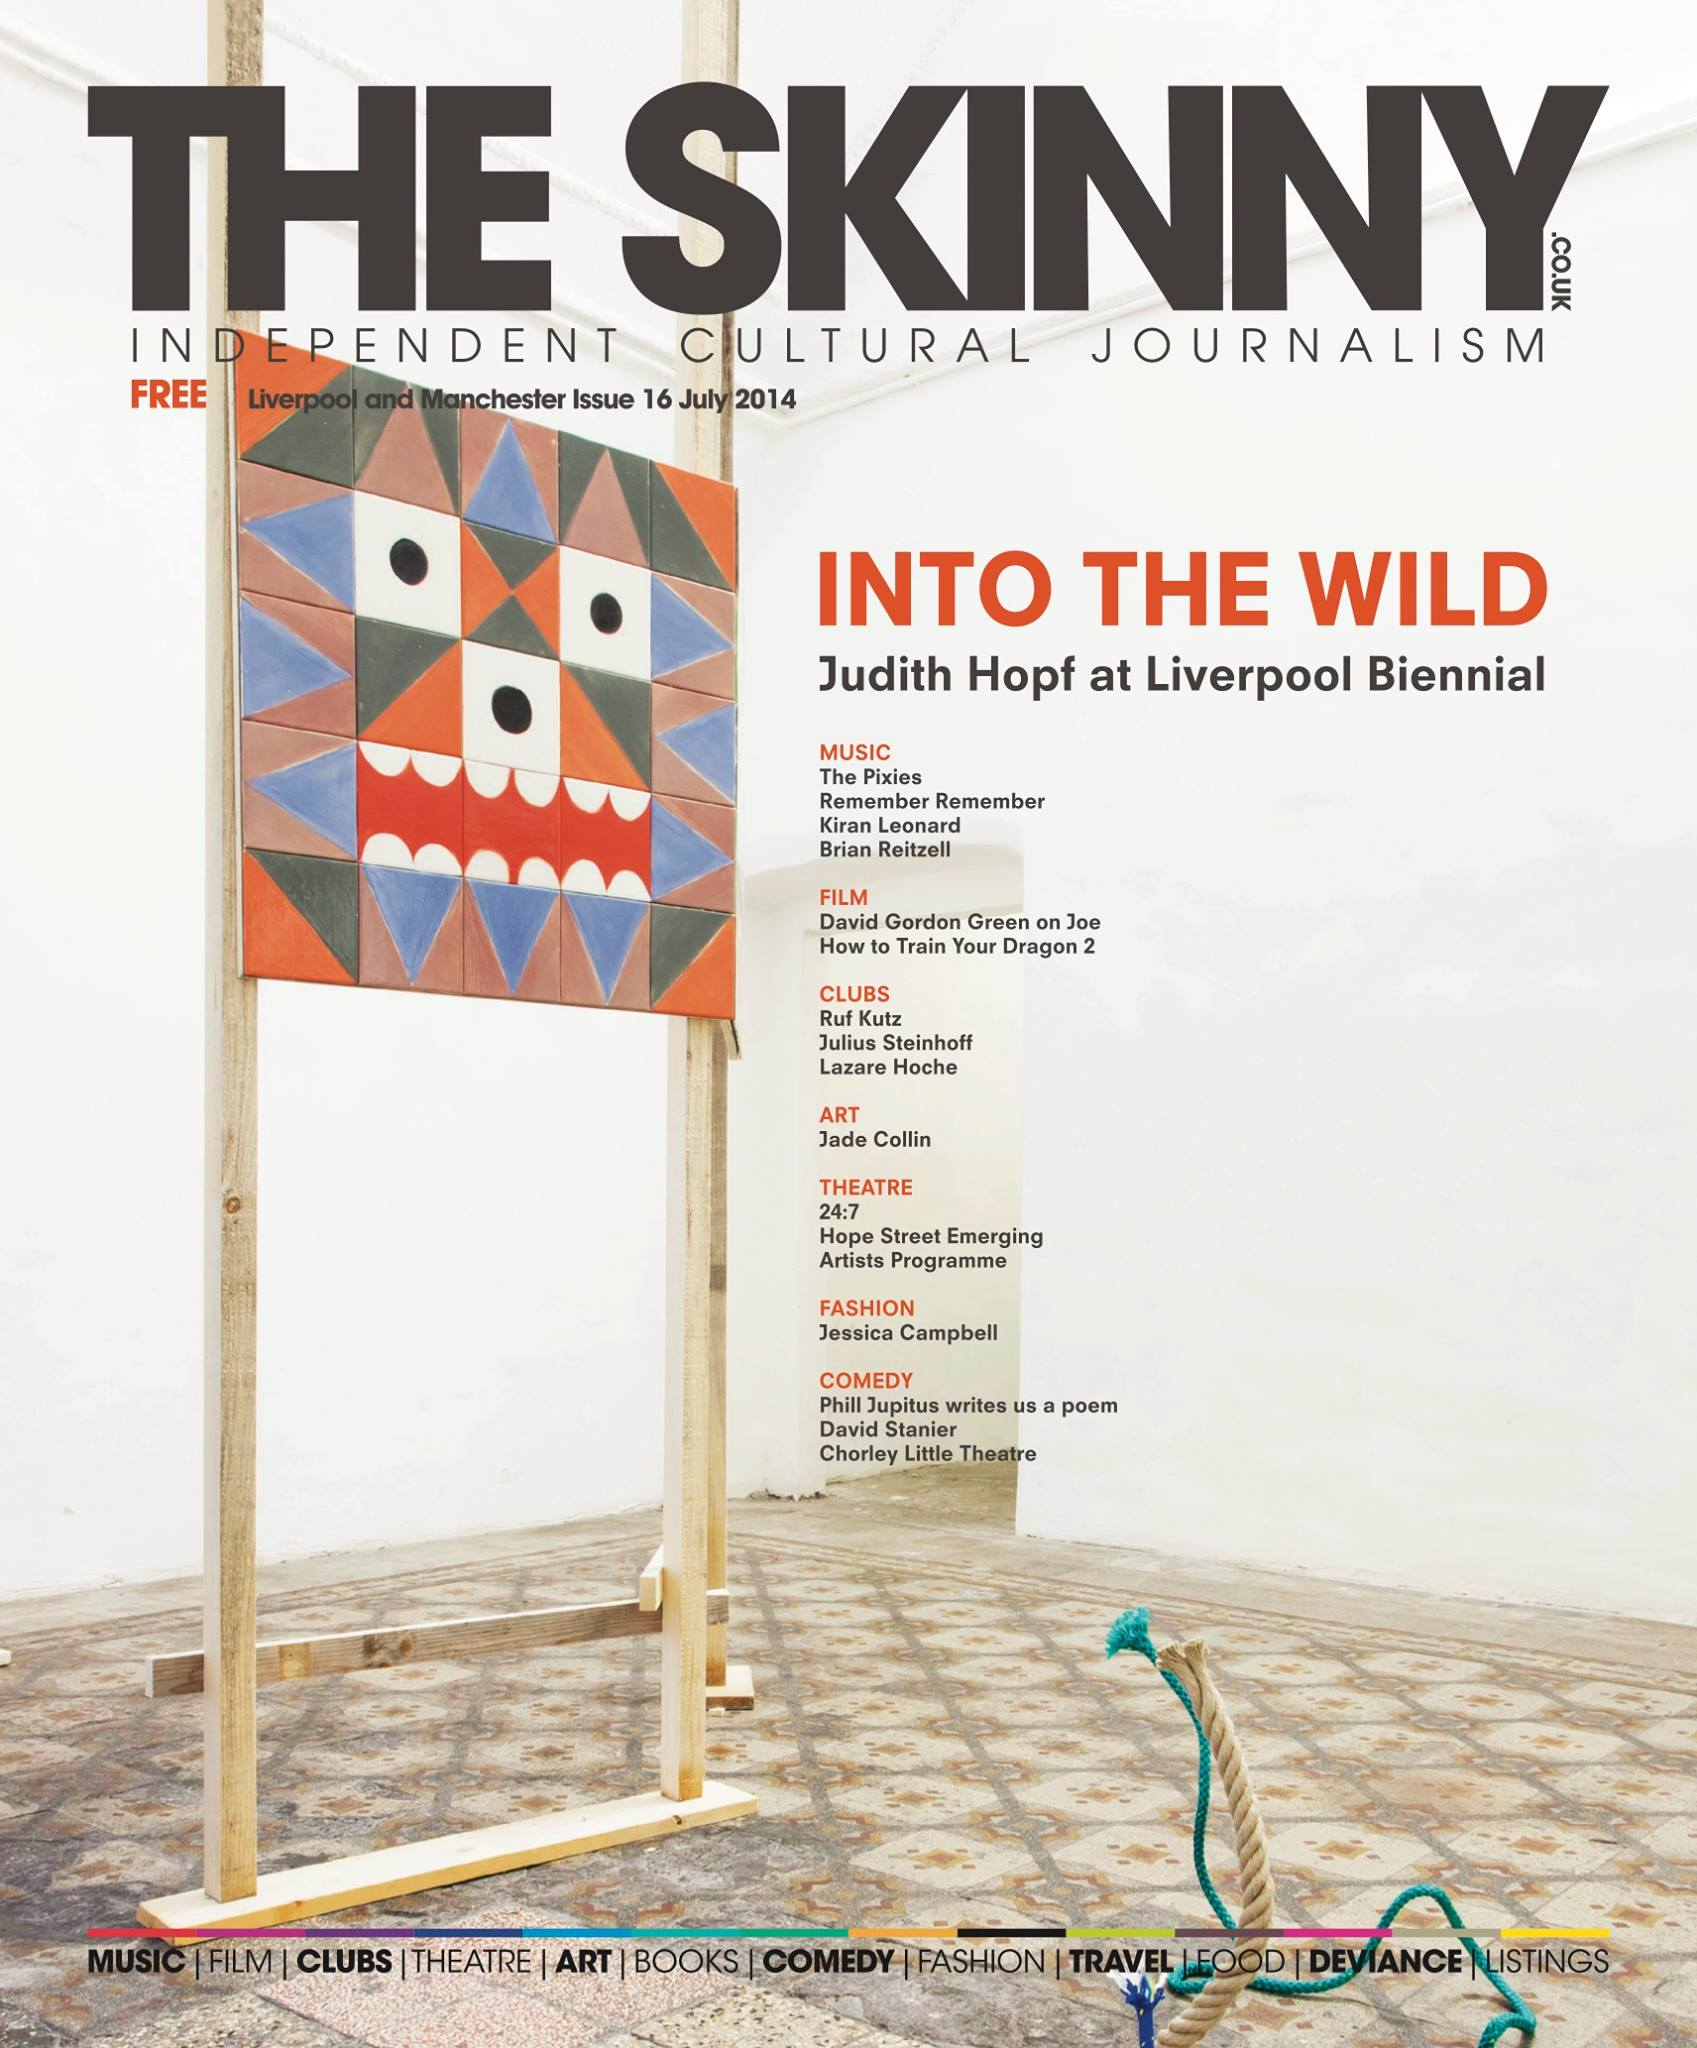 The Skinny, 16 July 2014